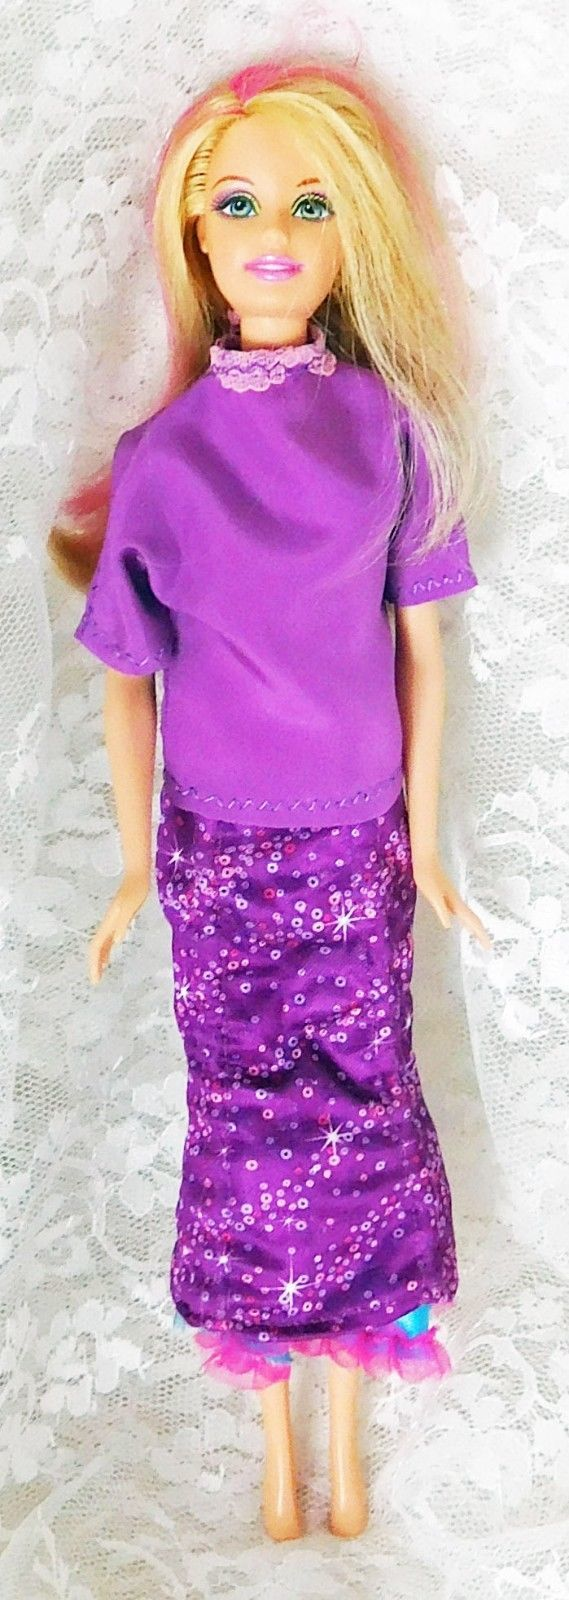 "Primary image for 2010 Mattel Barbie 11 1/2"" doll with Changing Skirt Goes Up and Down"